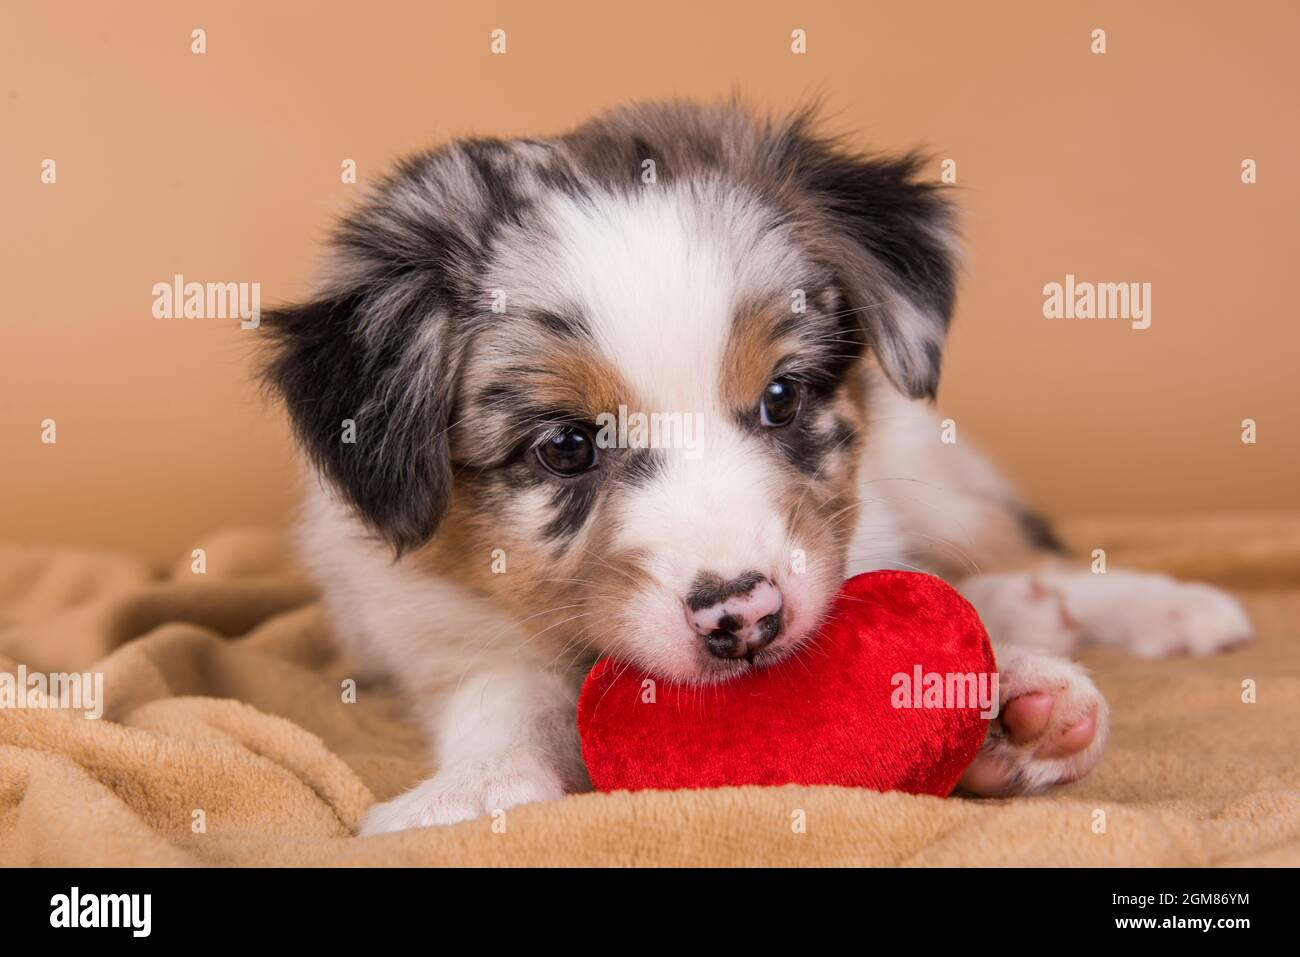 Red Merle Australian Shepherd puppy with copper points, six weeks old, sitting with red heart in front of light brown background Stock Photo